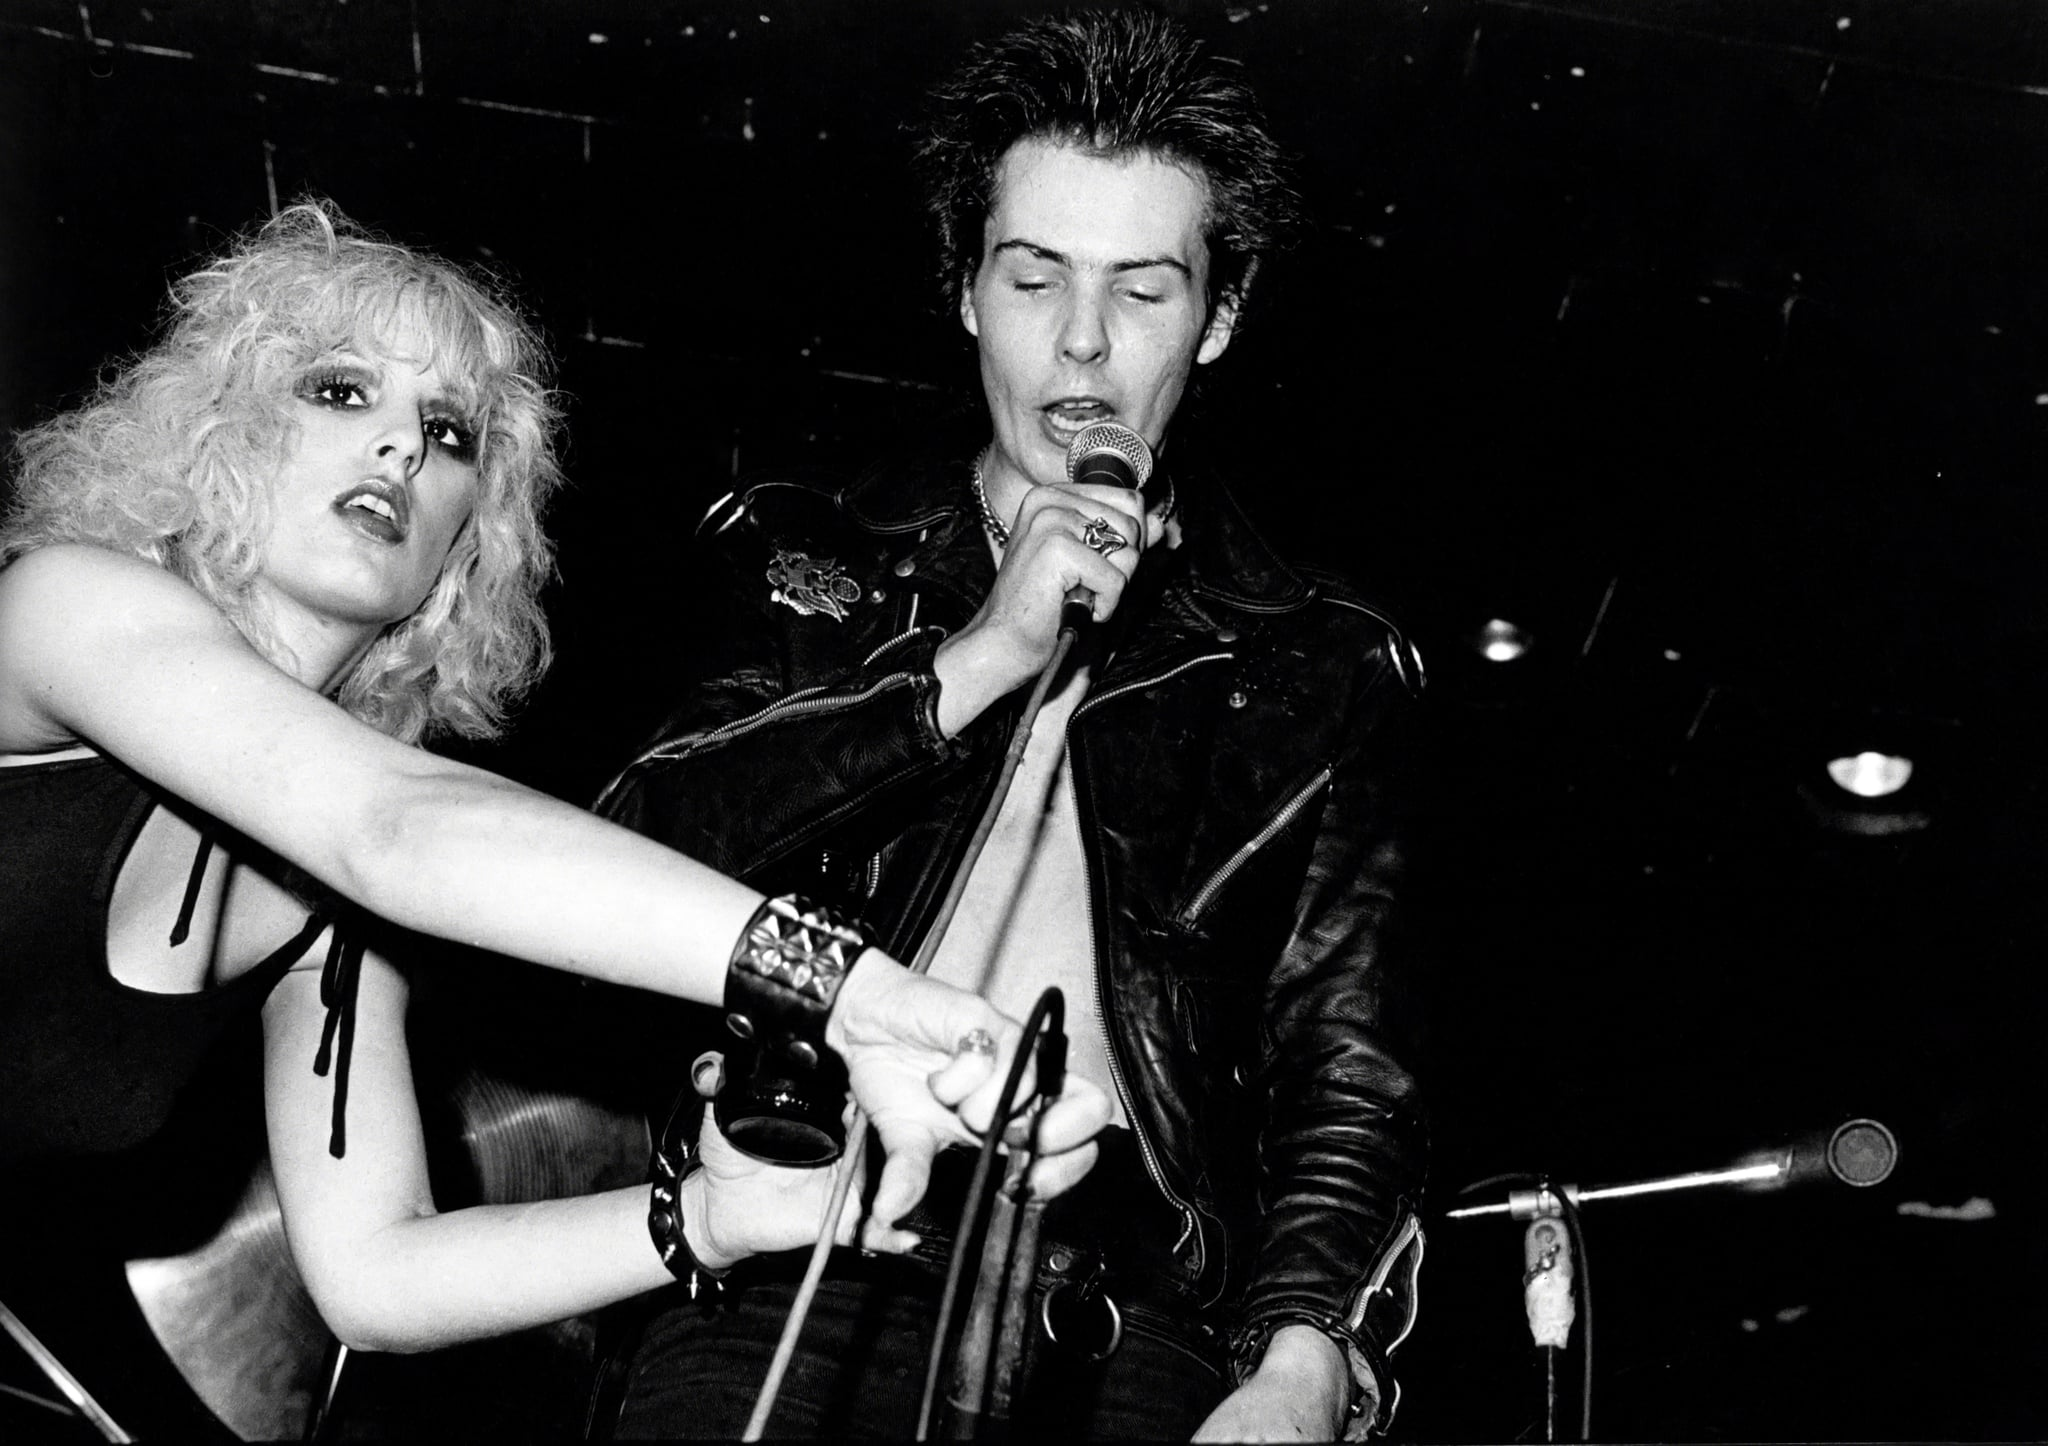 NEW YORK, NY - CIRCA 1978: Sid Vicious and Nancy Spungen circa 1978 in New York City. (Photo by Allan Tannenbaum/IMAGES/Getty Images)